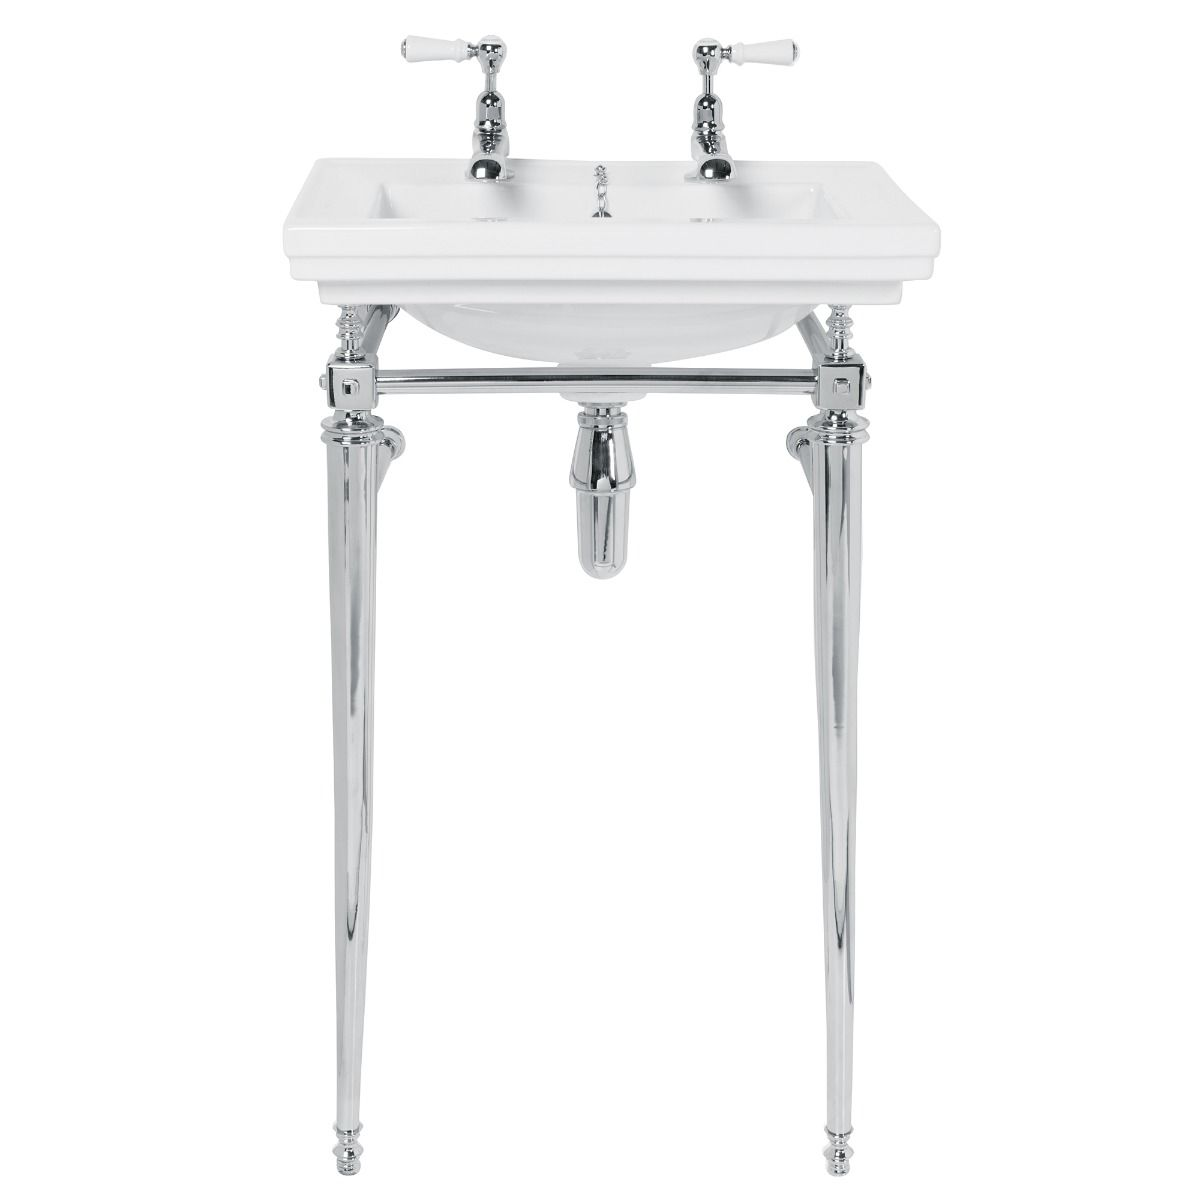 Battersea Cloakroom Basin and Washstand